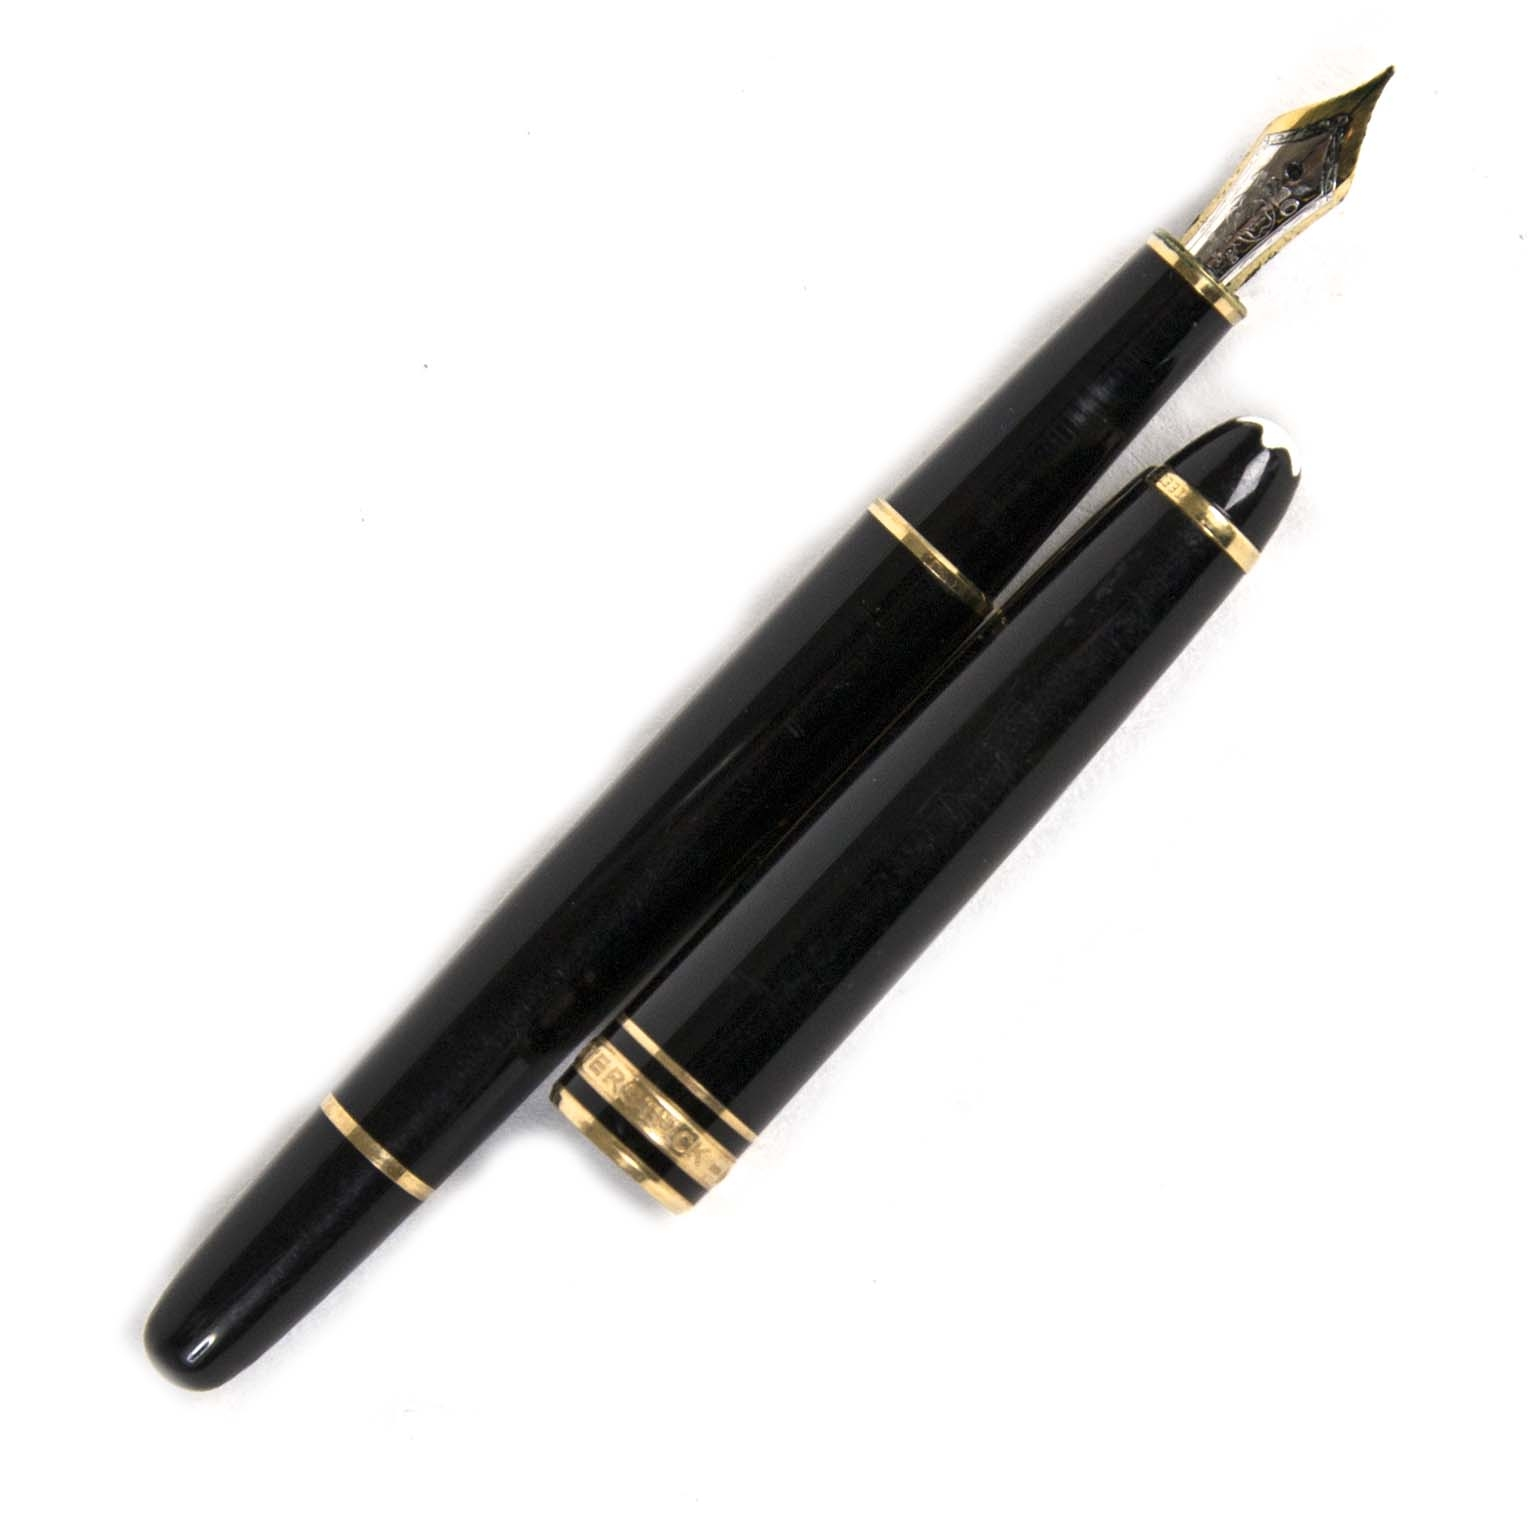 montblanc meiserstuck black fountain pen now for sale at labellov vintage fashion webshop belgium